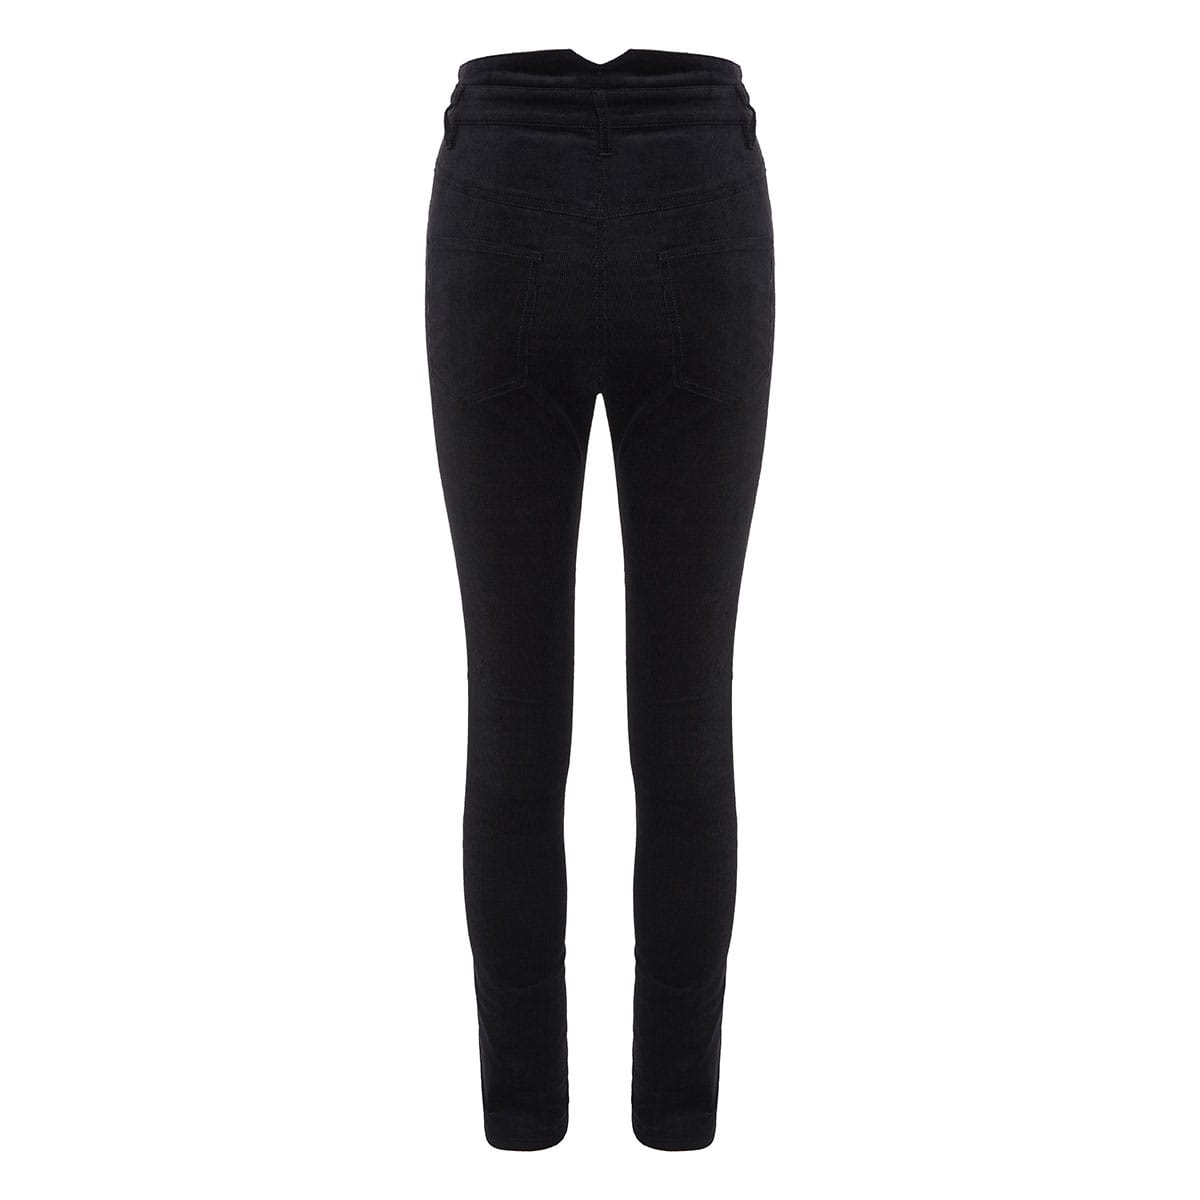 High-waist corduroy skinny trousers